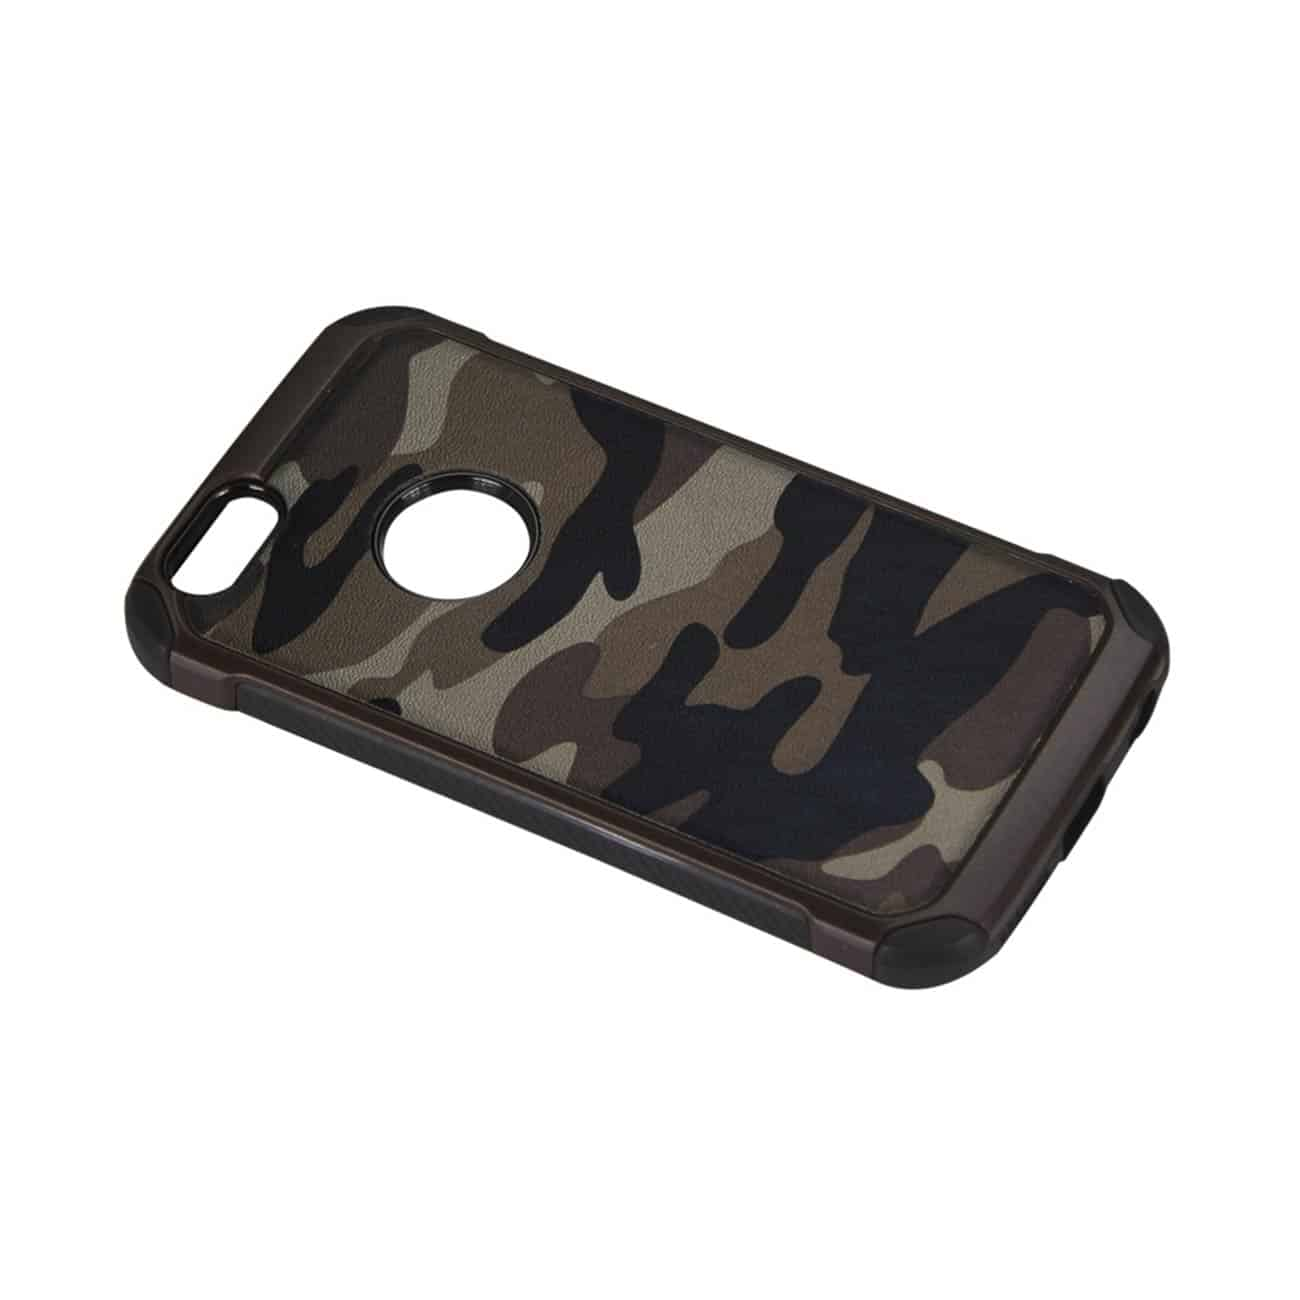 IPHONE 5C HYBRID LEATHER CAMOUFLAGE CASE IN BROWN